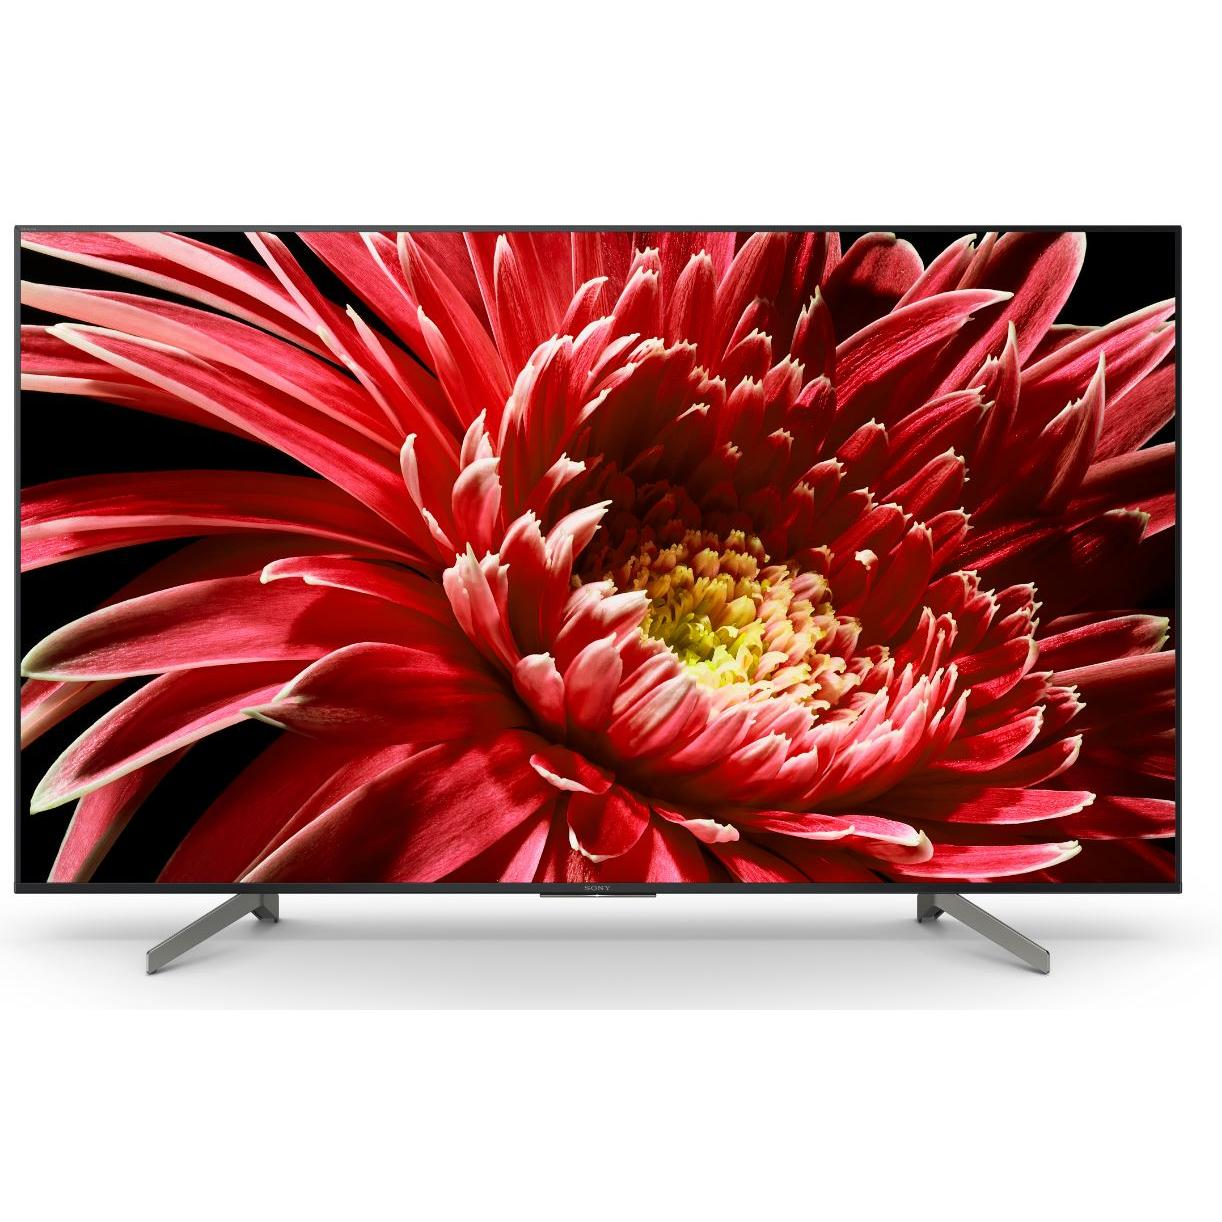 "Sony KD-65XG8505 65"" LED 4K Ultra HD HDR Smart Television"